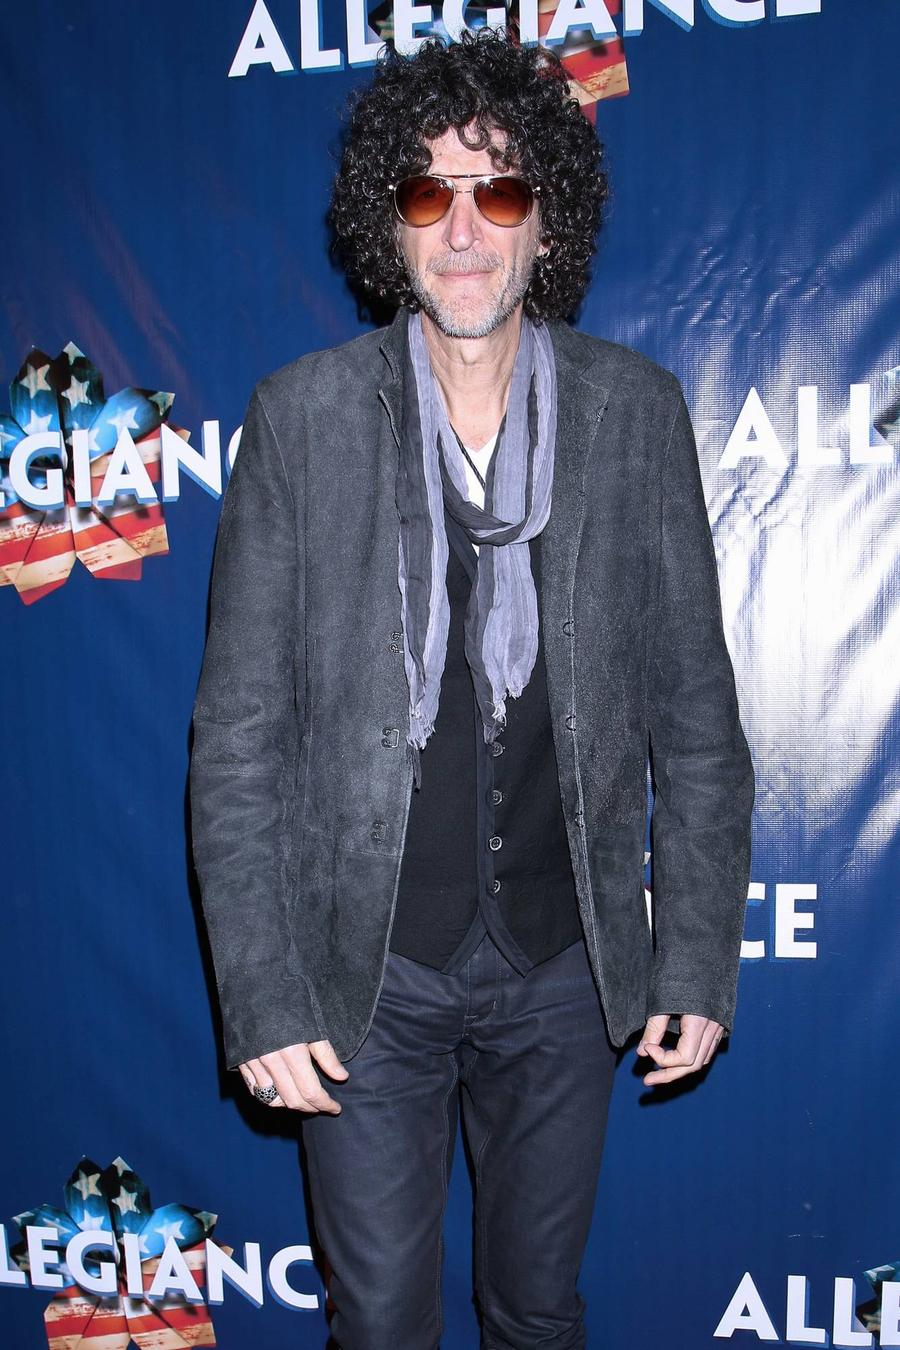 Howard Stern Gathers Stars For Beatles' Revolver Tribute